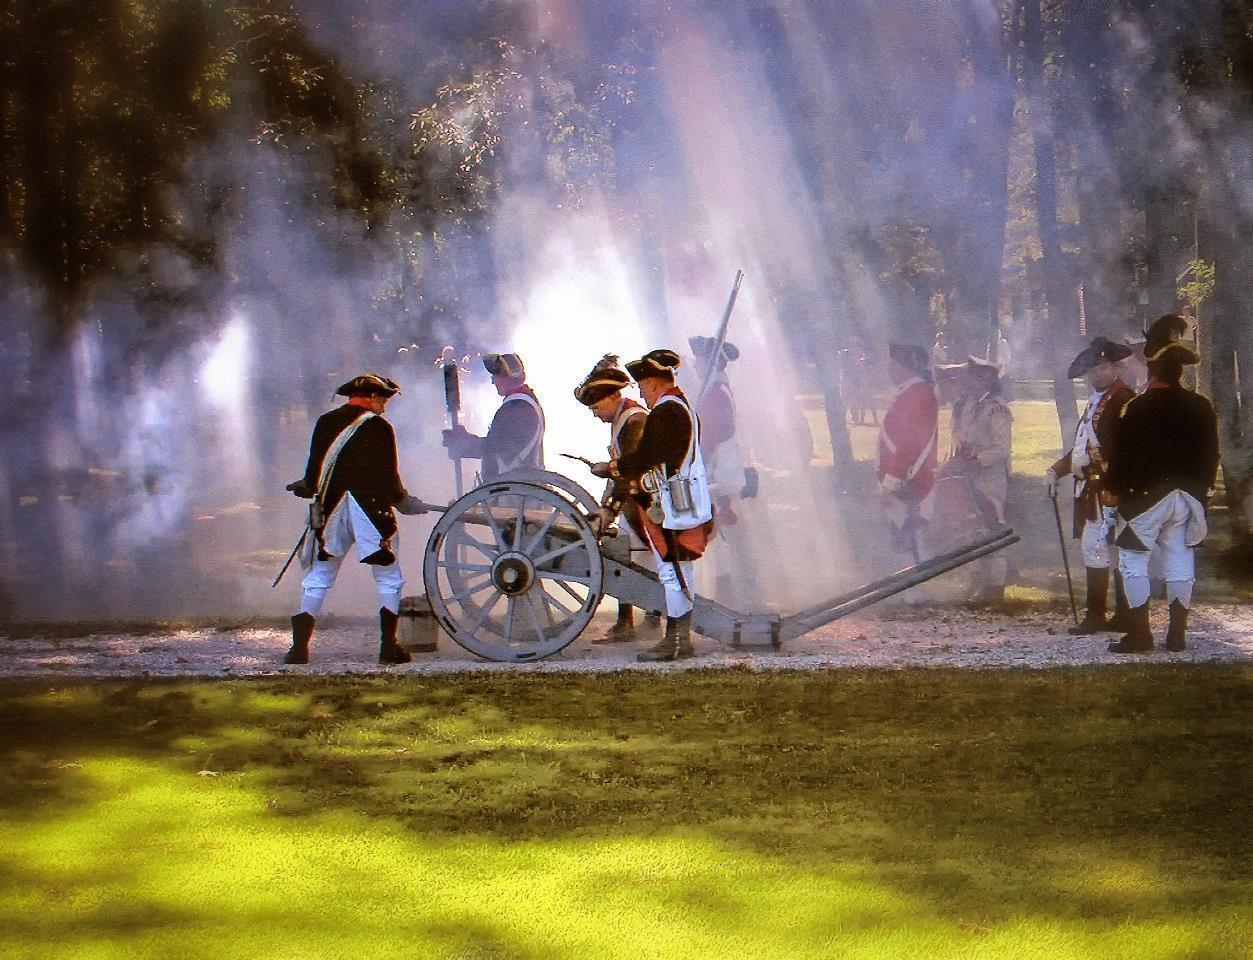 Cold Spring Village Revolutionary War Reenactment